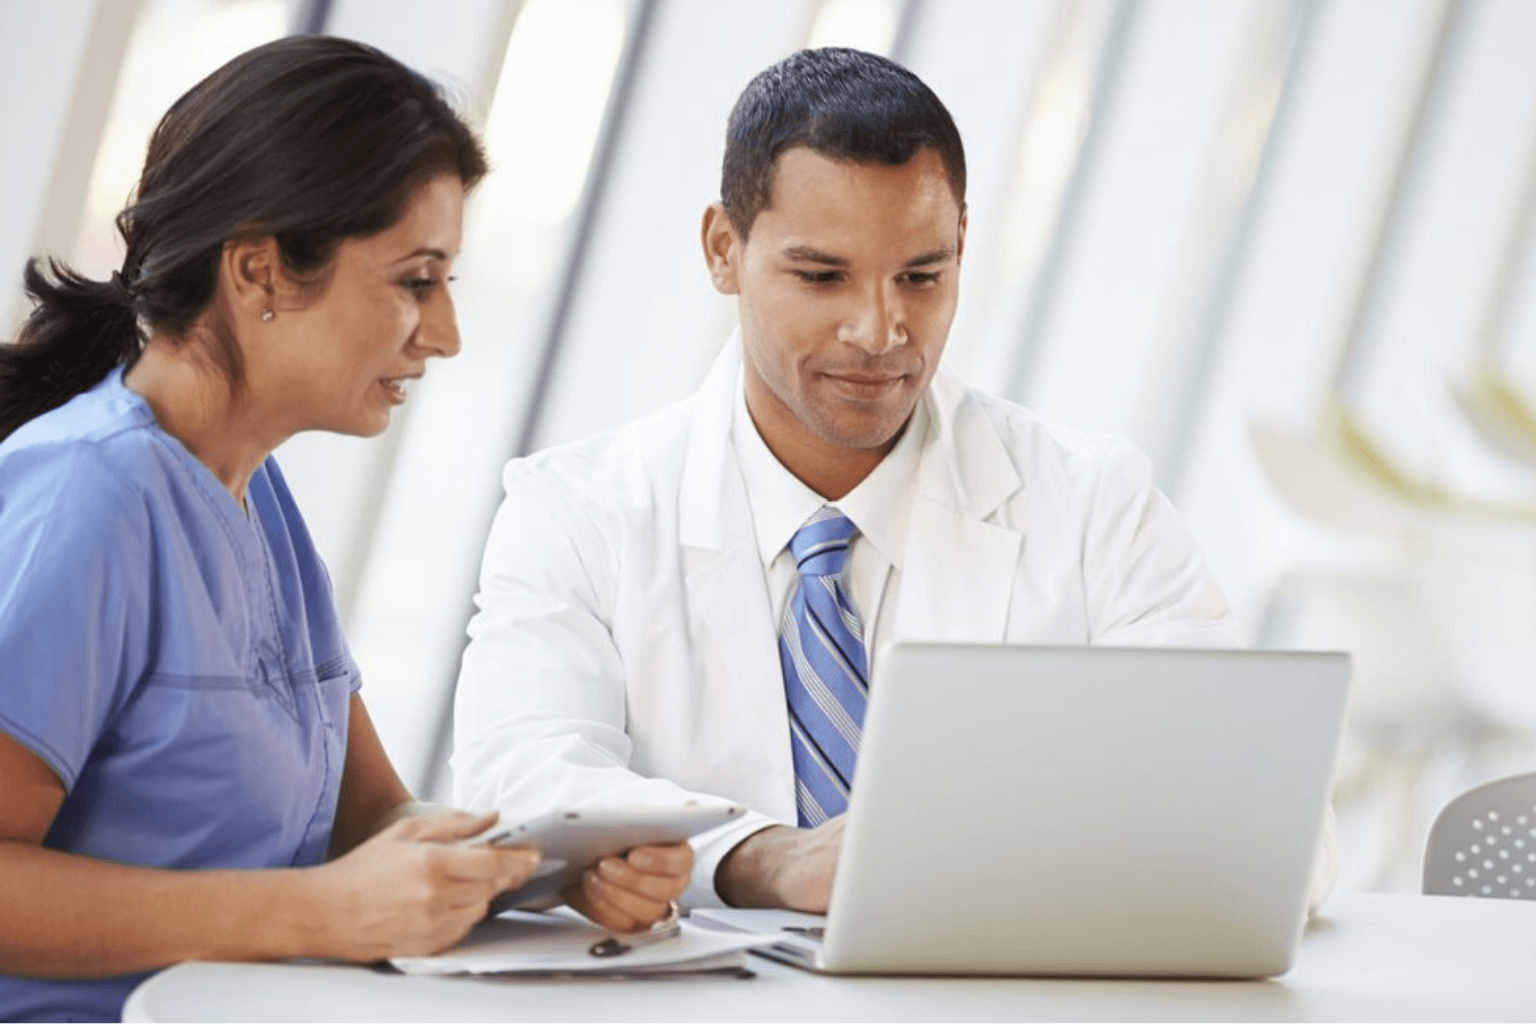 Two medical professionals looking at a laptop